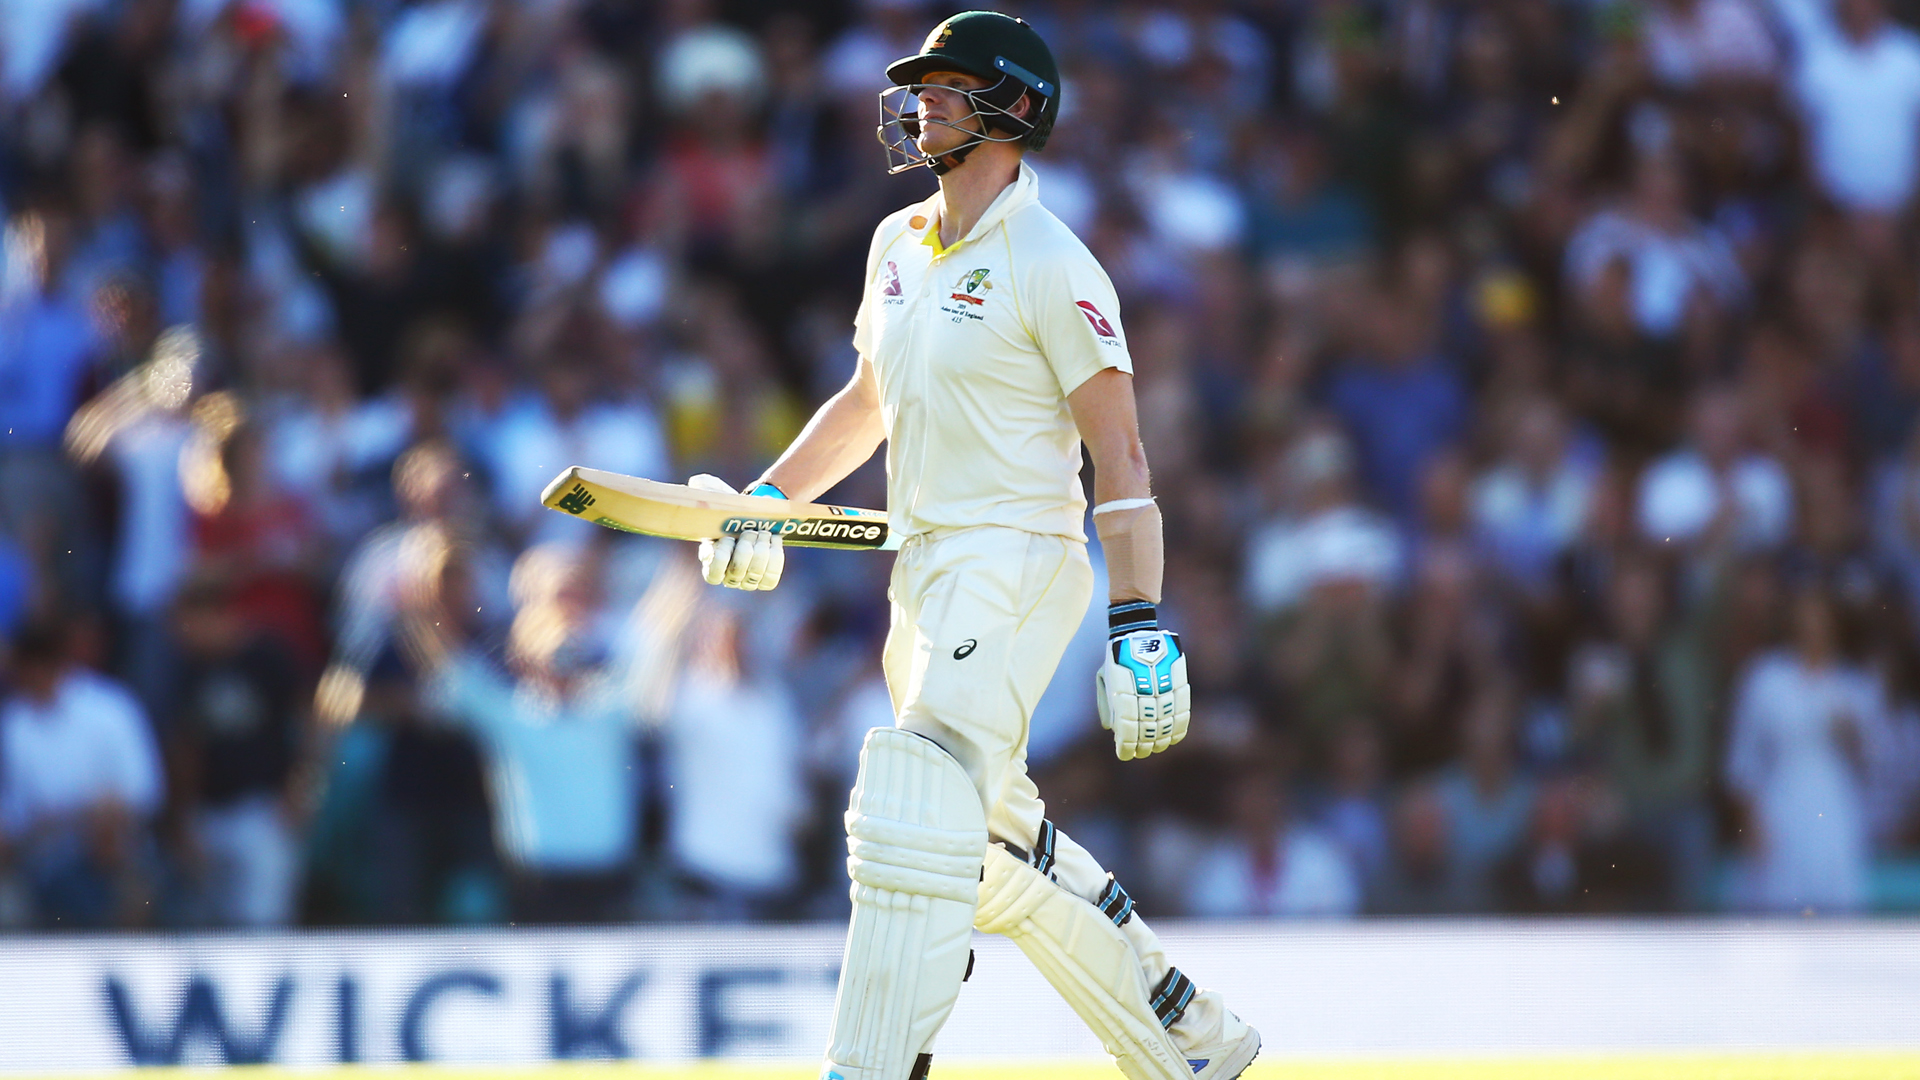 Ashes 2019: He got me there – Smith tricked into dive by Bairstow